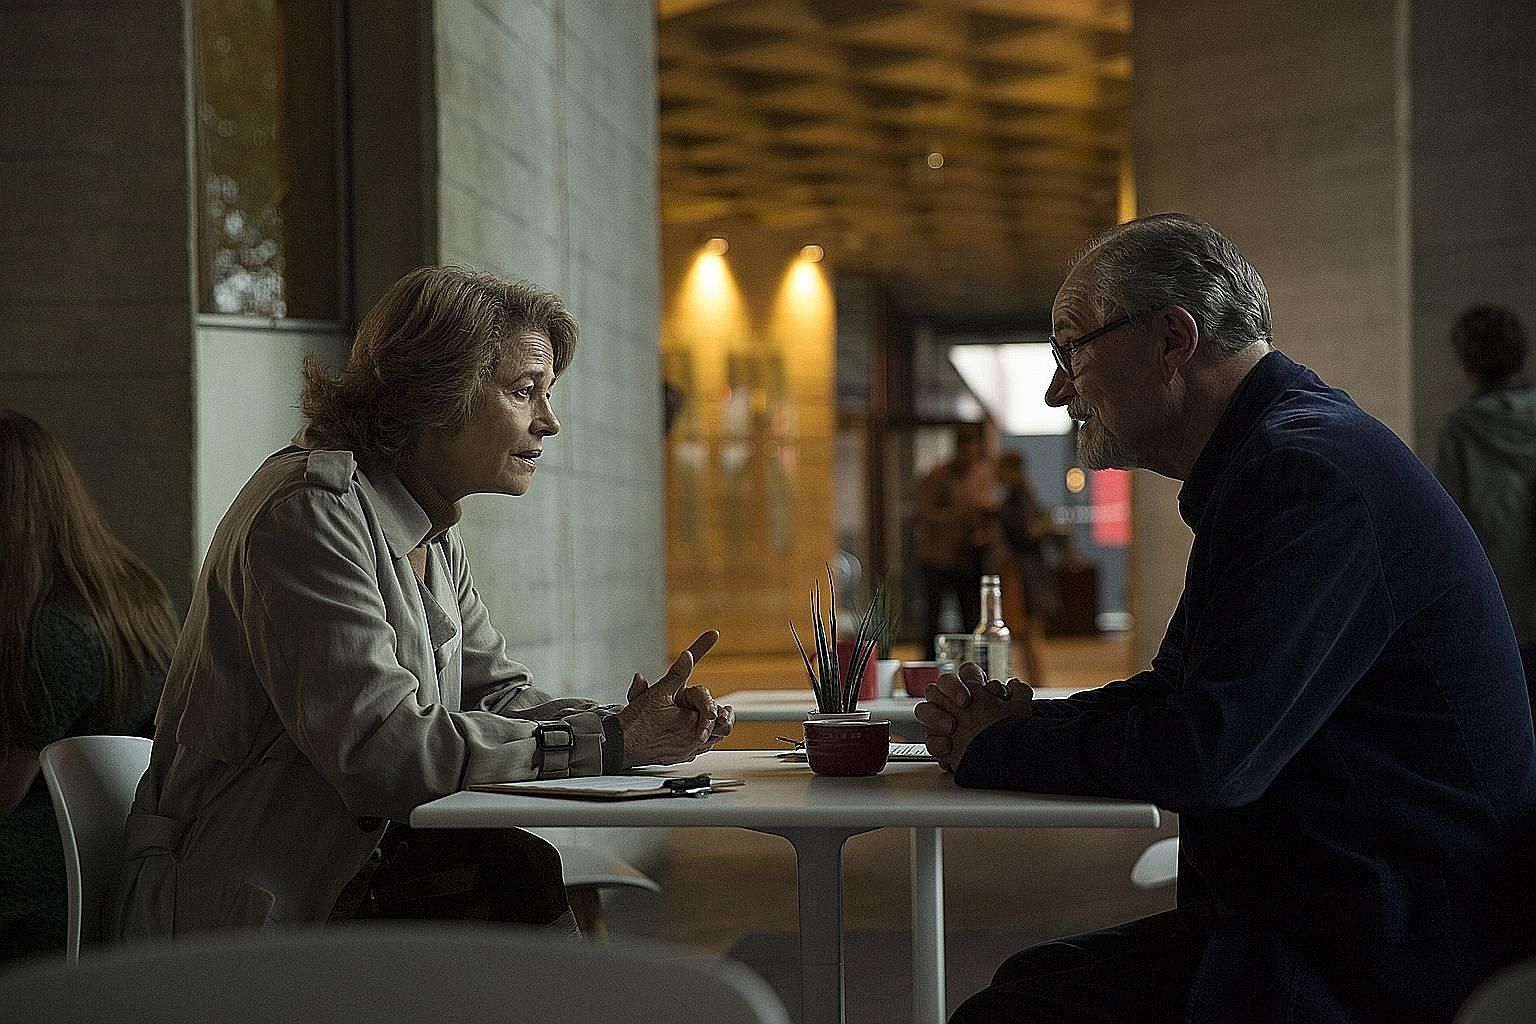 Jim Broadbent and Charlotte Rampling in The Sense Of An Ending.